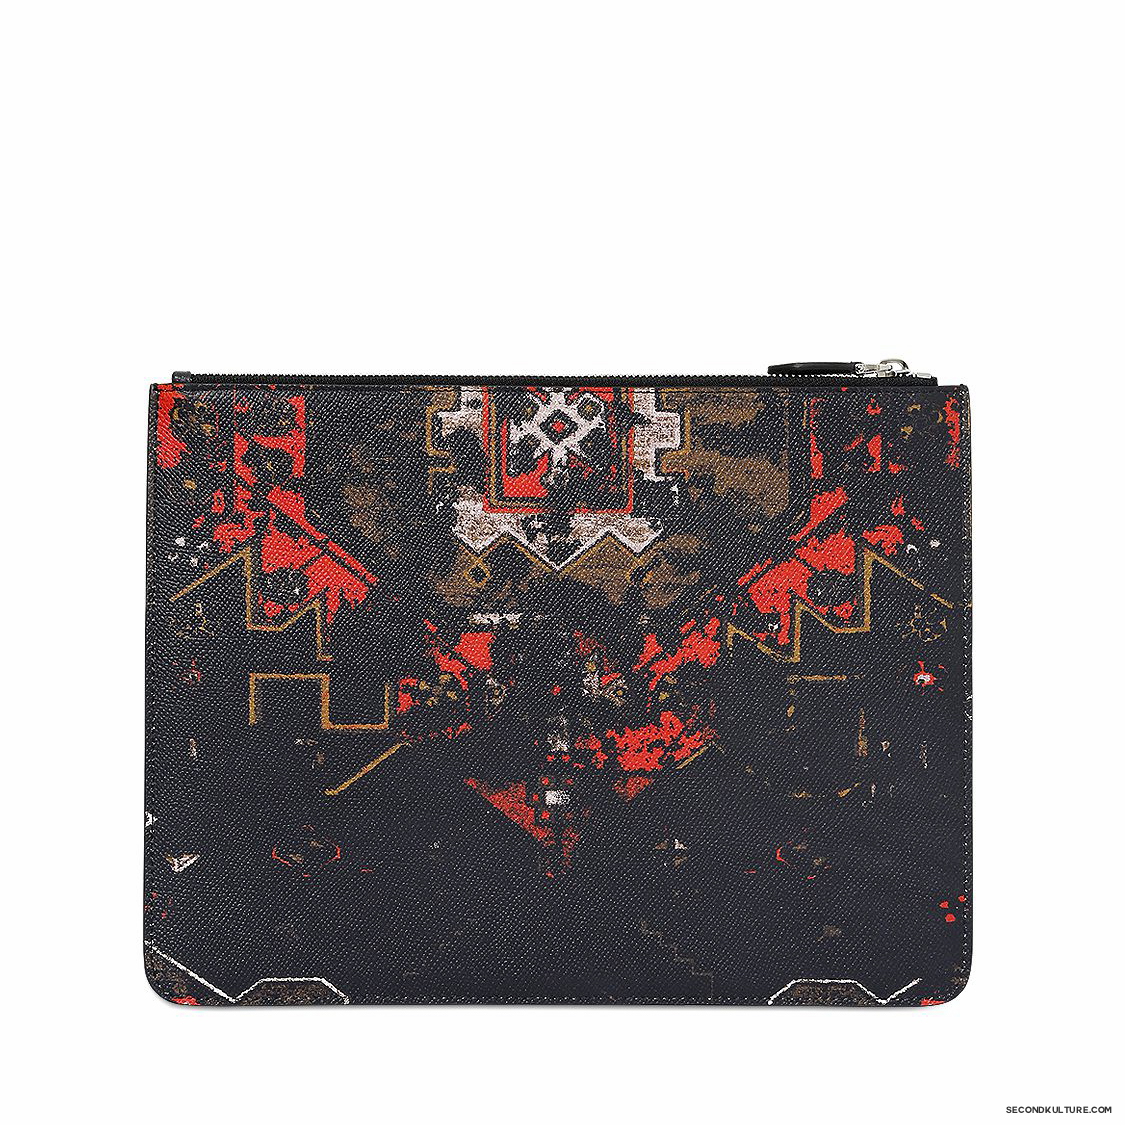 Givenchy-Native-American-Carpet-Degraded-Print-Zipped-Leather-Pouch-Fall-Winter-2015-2